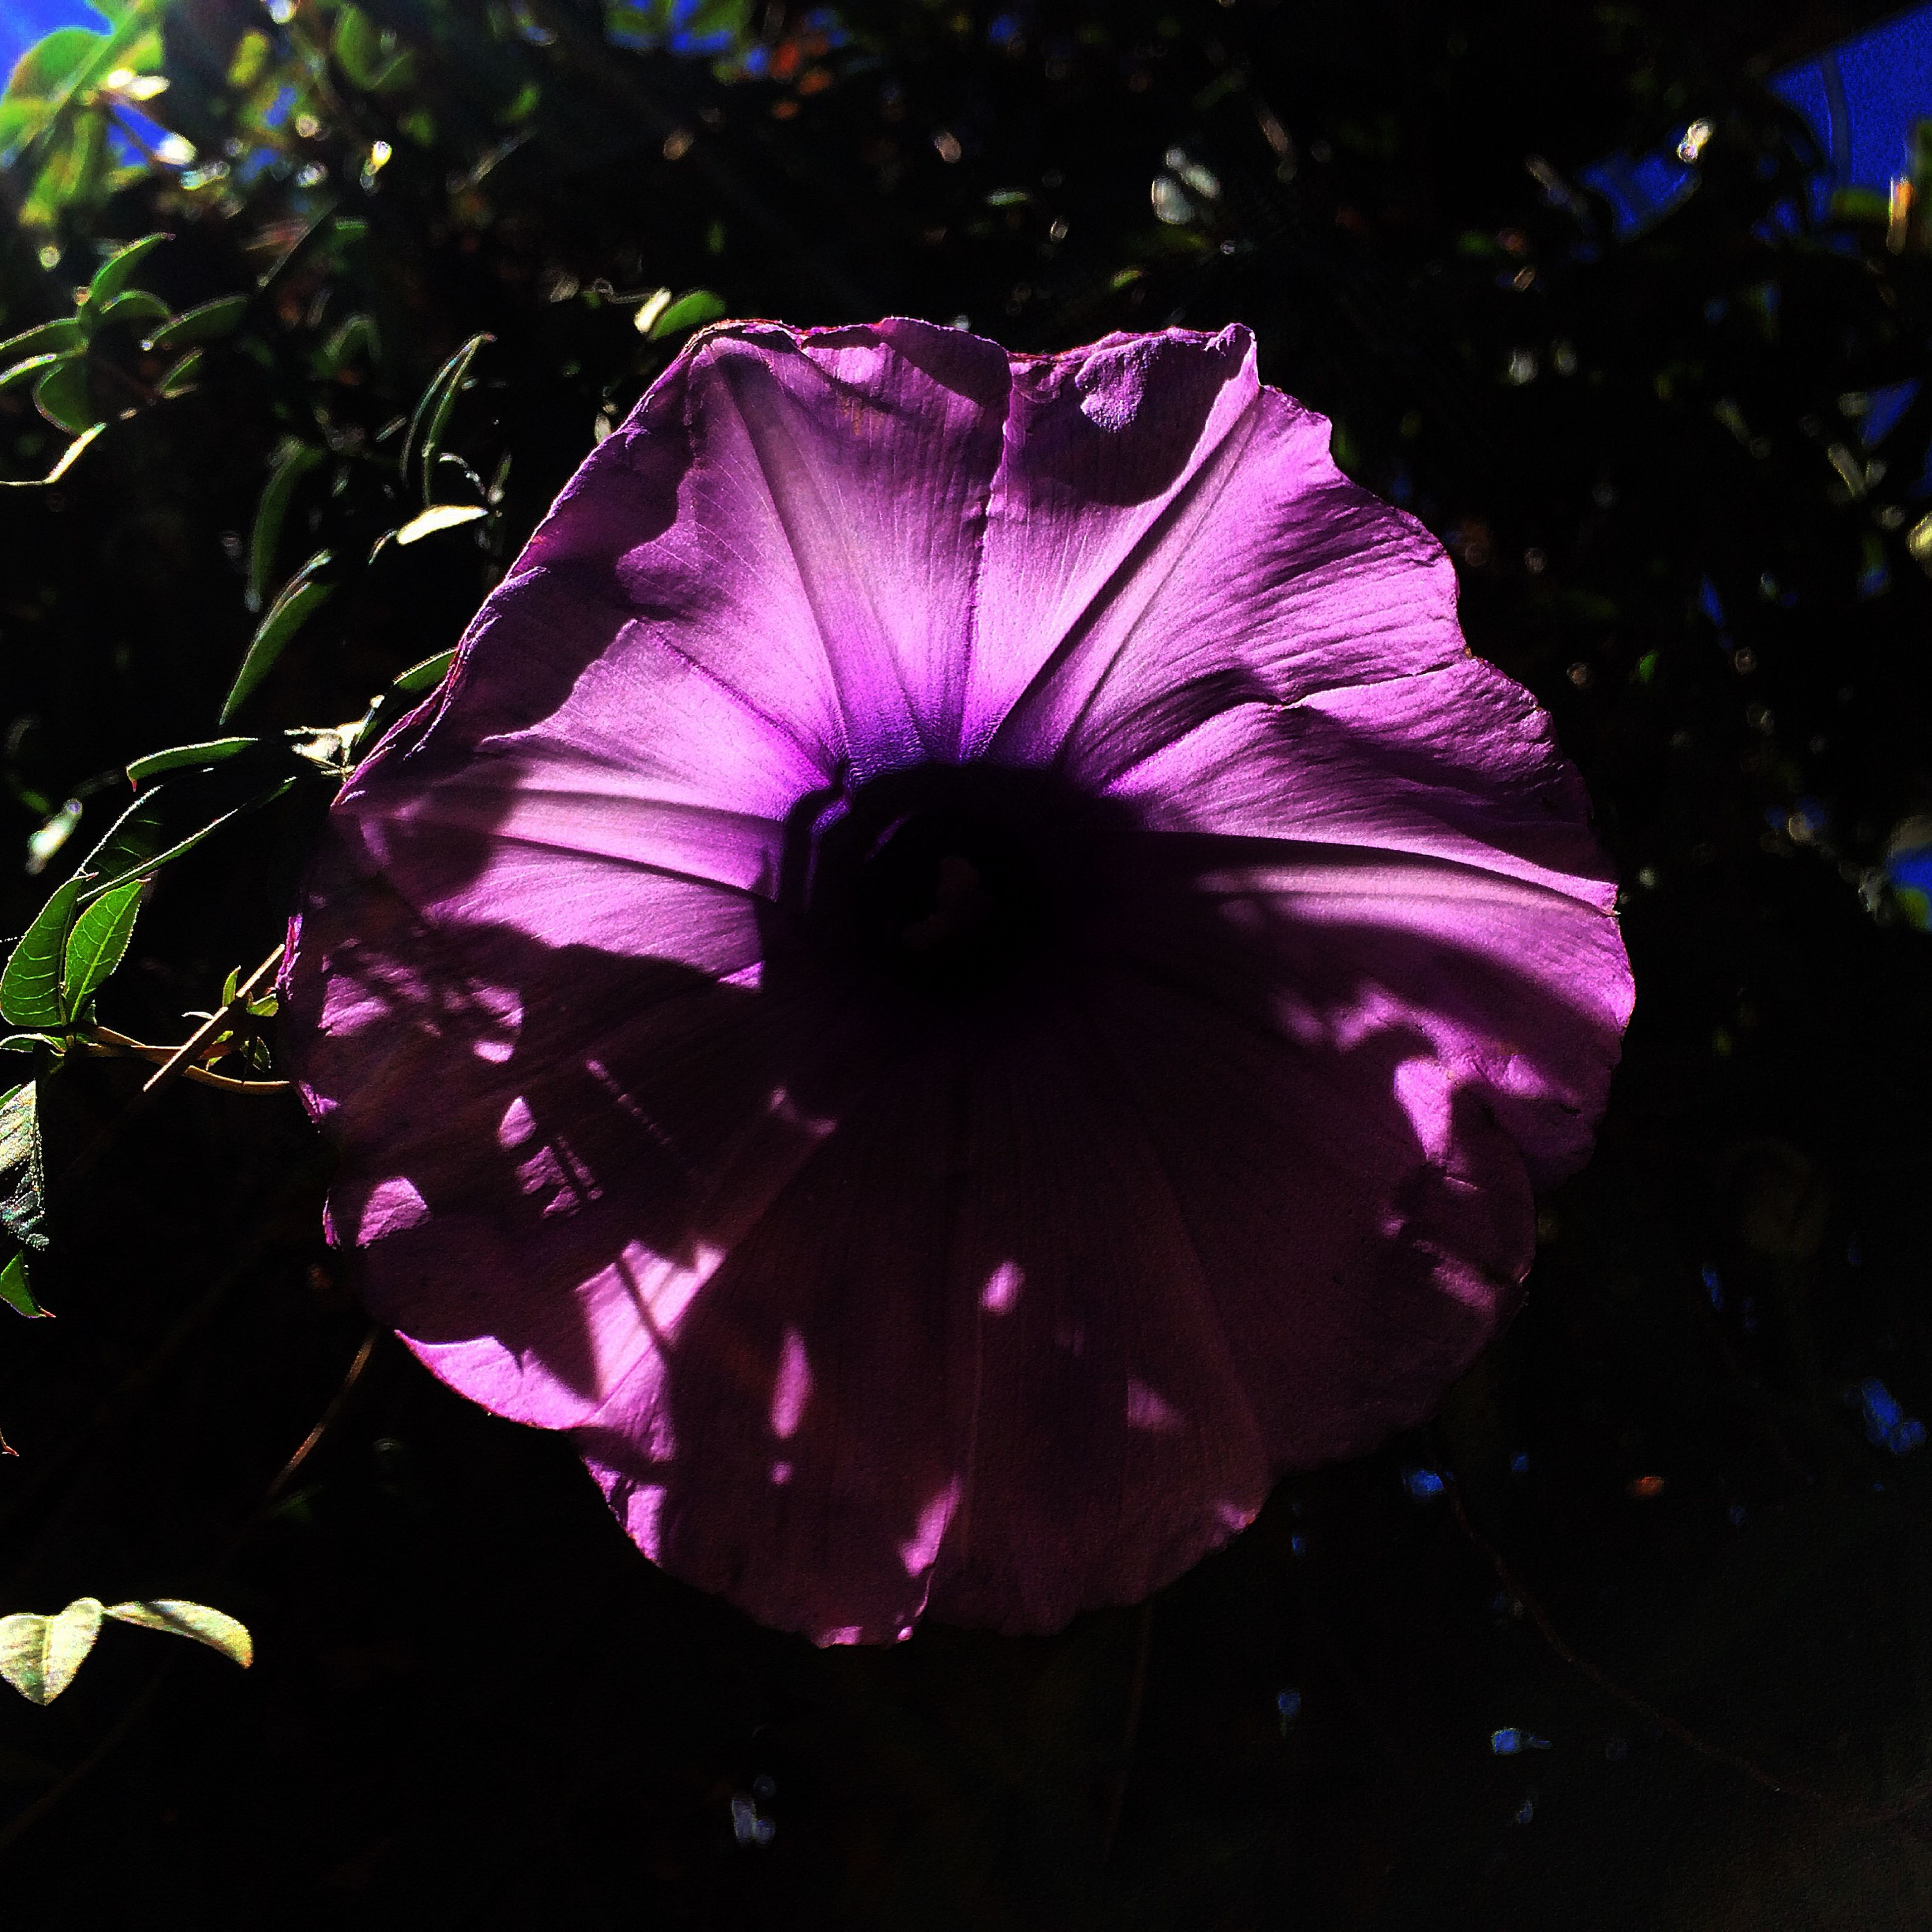 flower, animal themes, purple, one animal, beauty in nature, fragility, close-up, animals in the wild, nature, wildlife, petal, flower head, outdoors, single flower, no people, growth, water, freshness, focus on foreground, sunlight